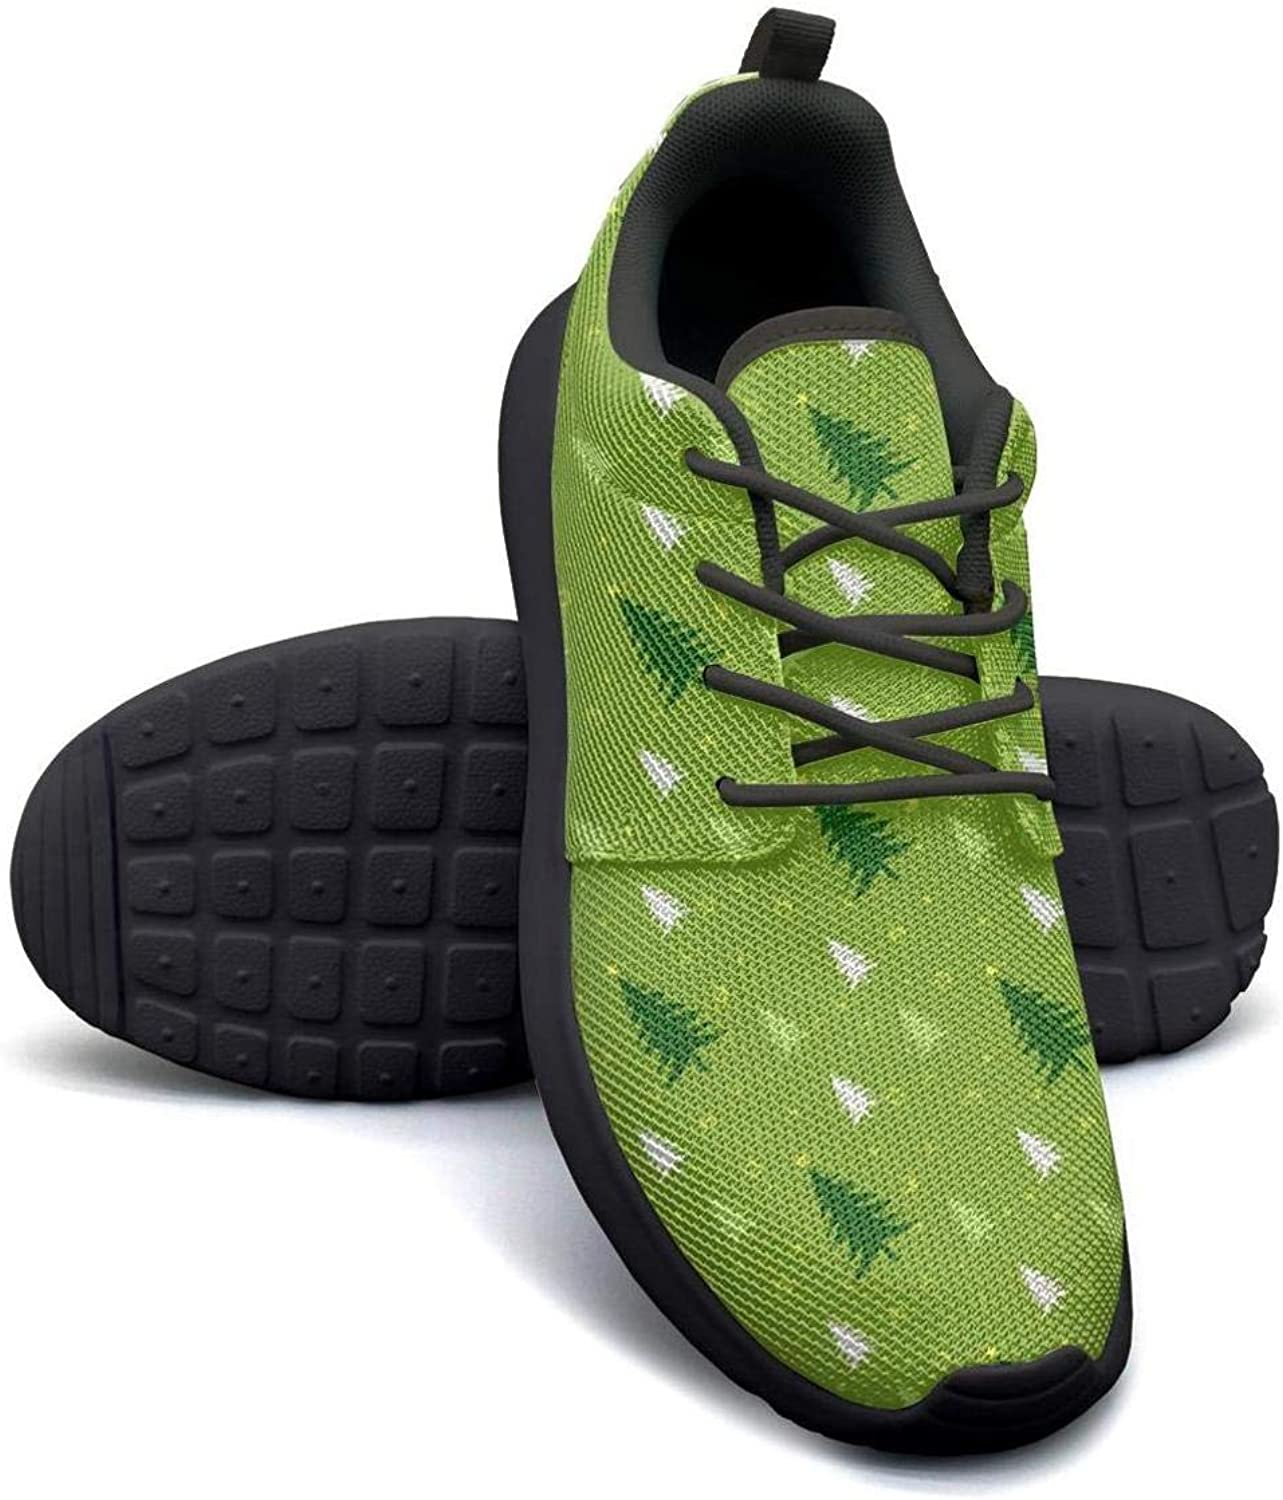 Gjsonmv Green Christmas Tree mesh Lightweight shoes for Women Comfortable Sports Workout Sneakers shoes